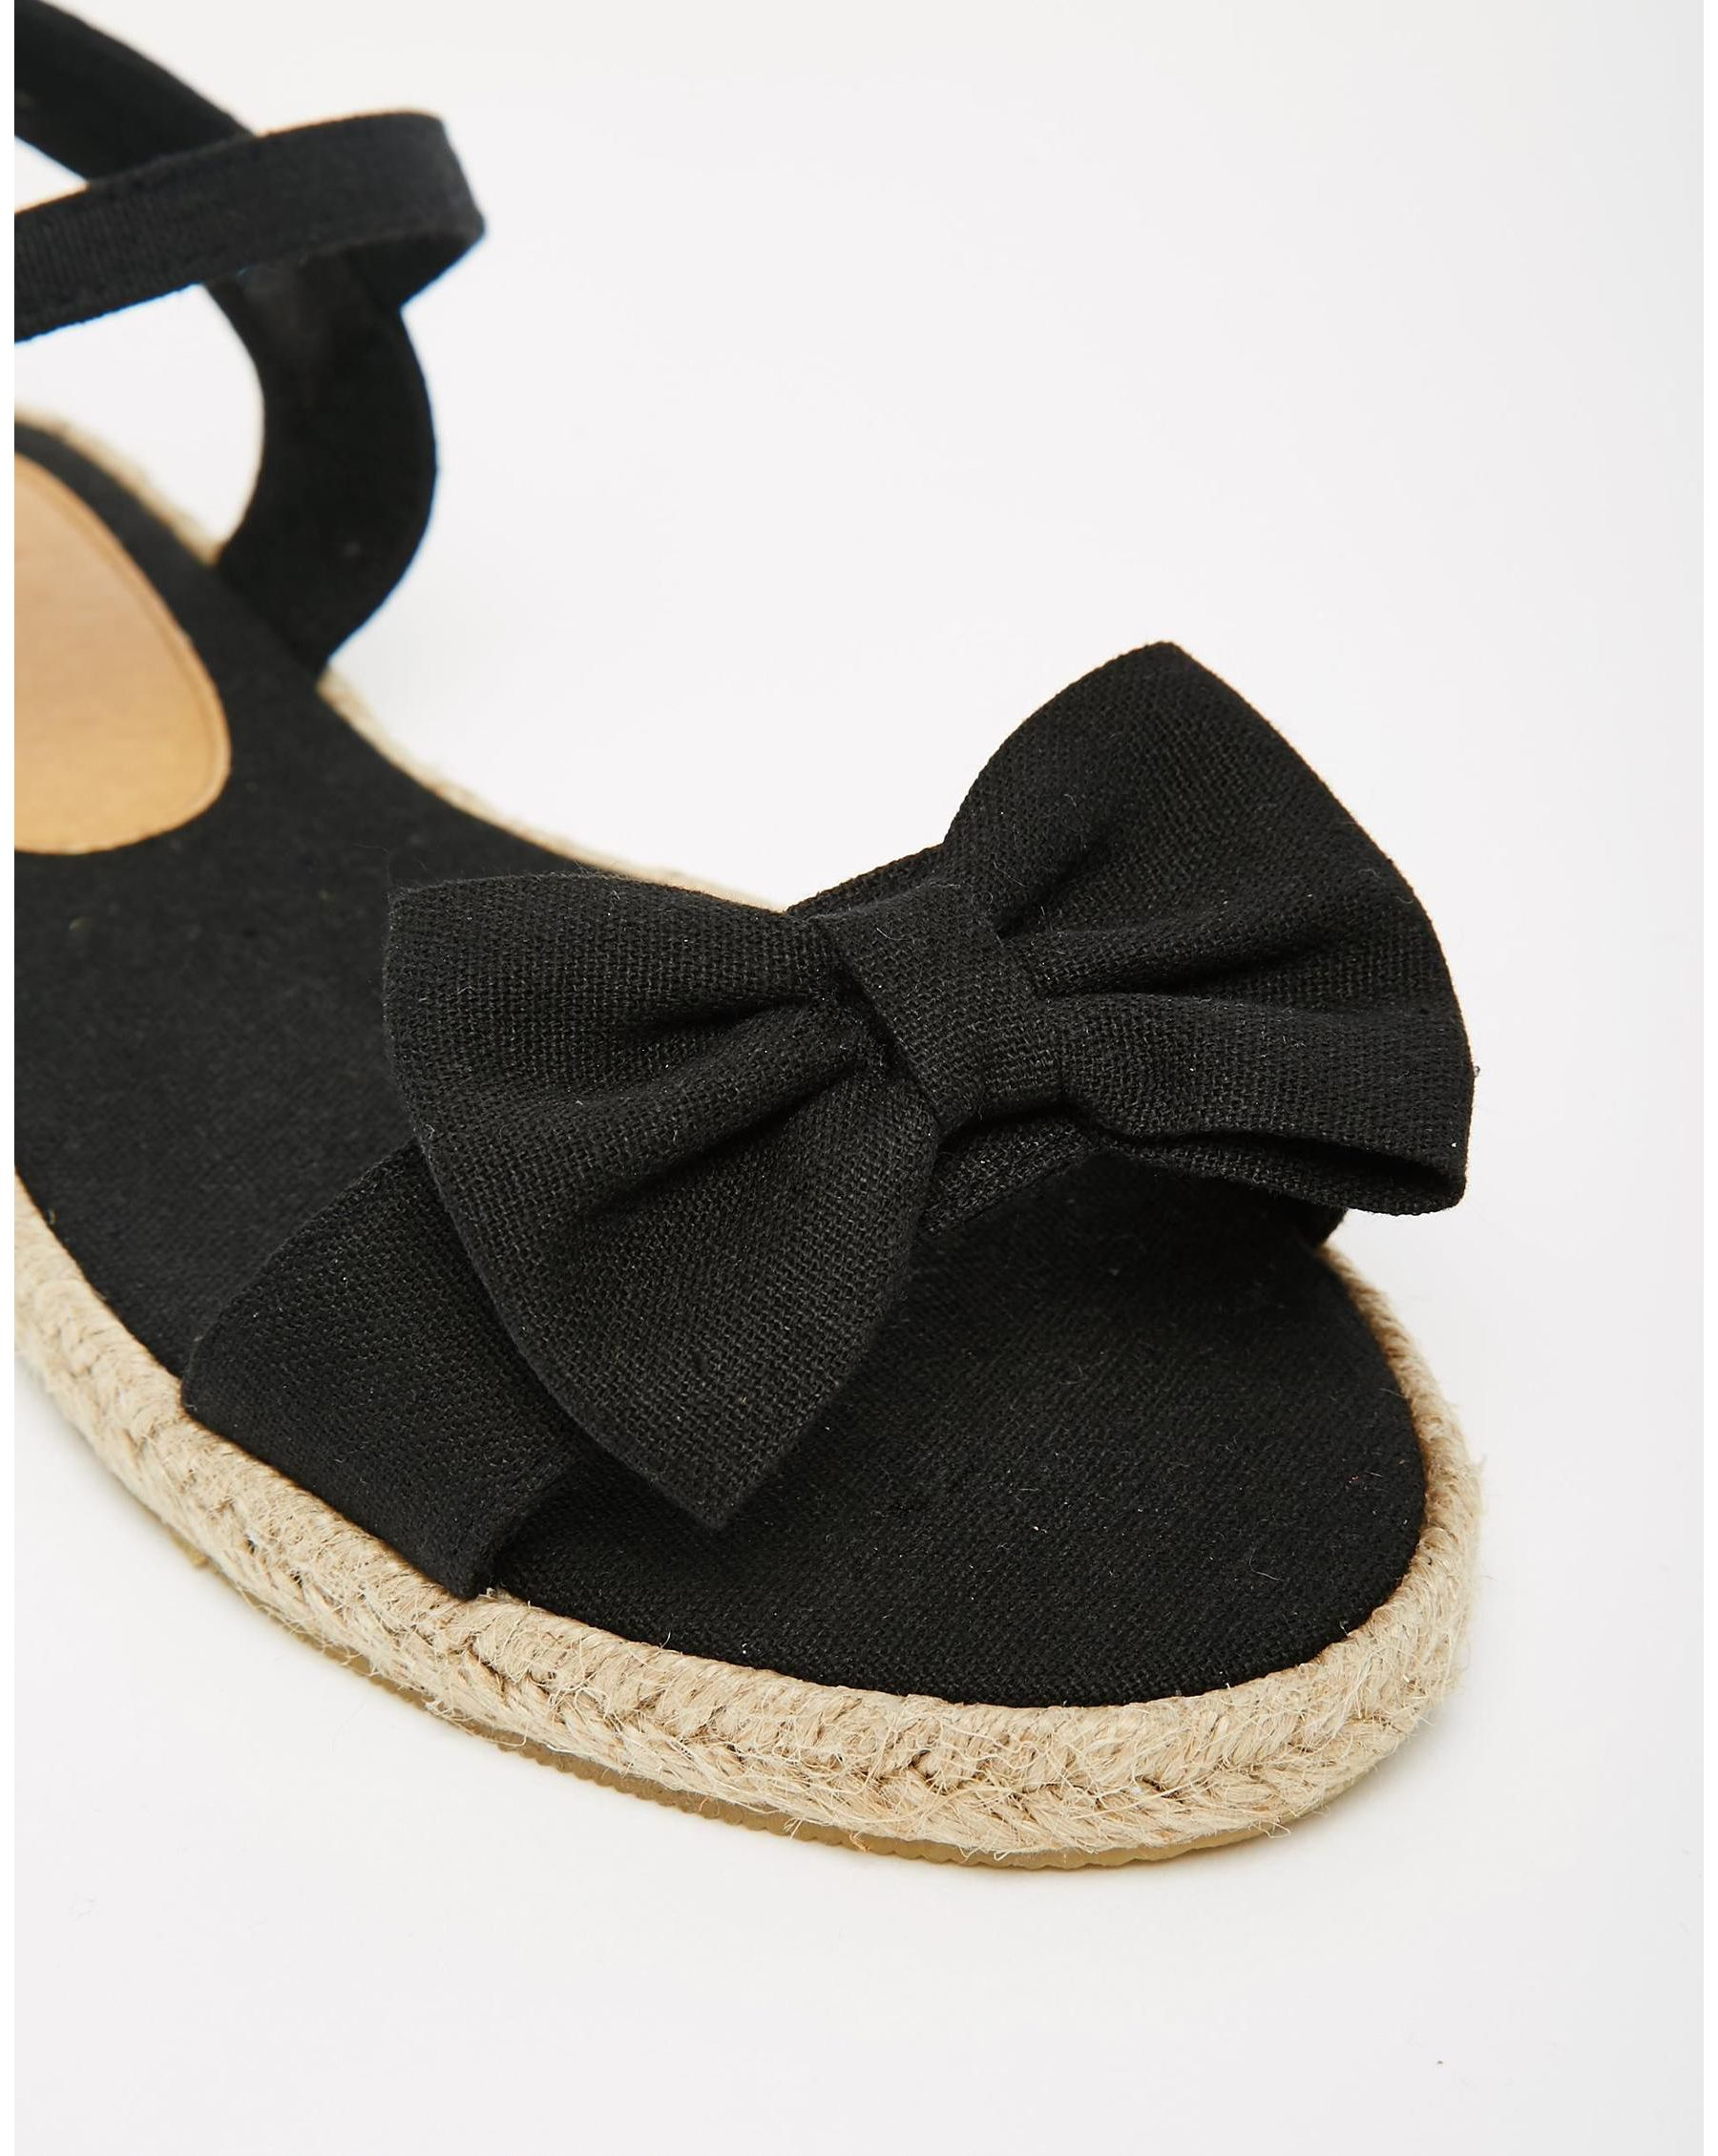 9b4a098d3 Lyst - ASOS Juno Espadrille Bow Sandals - Black in Black